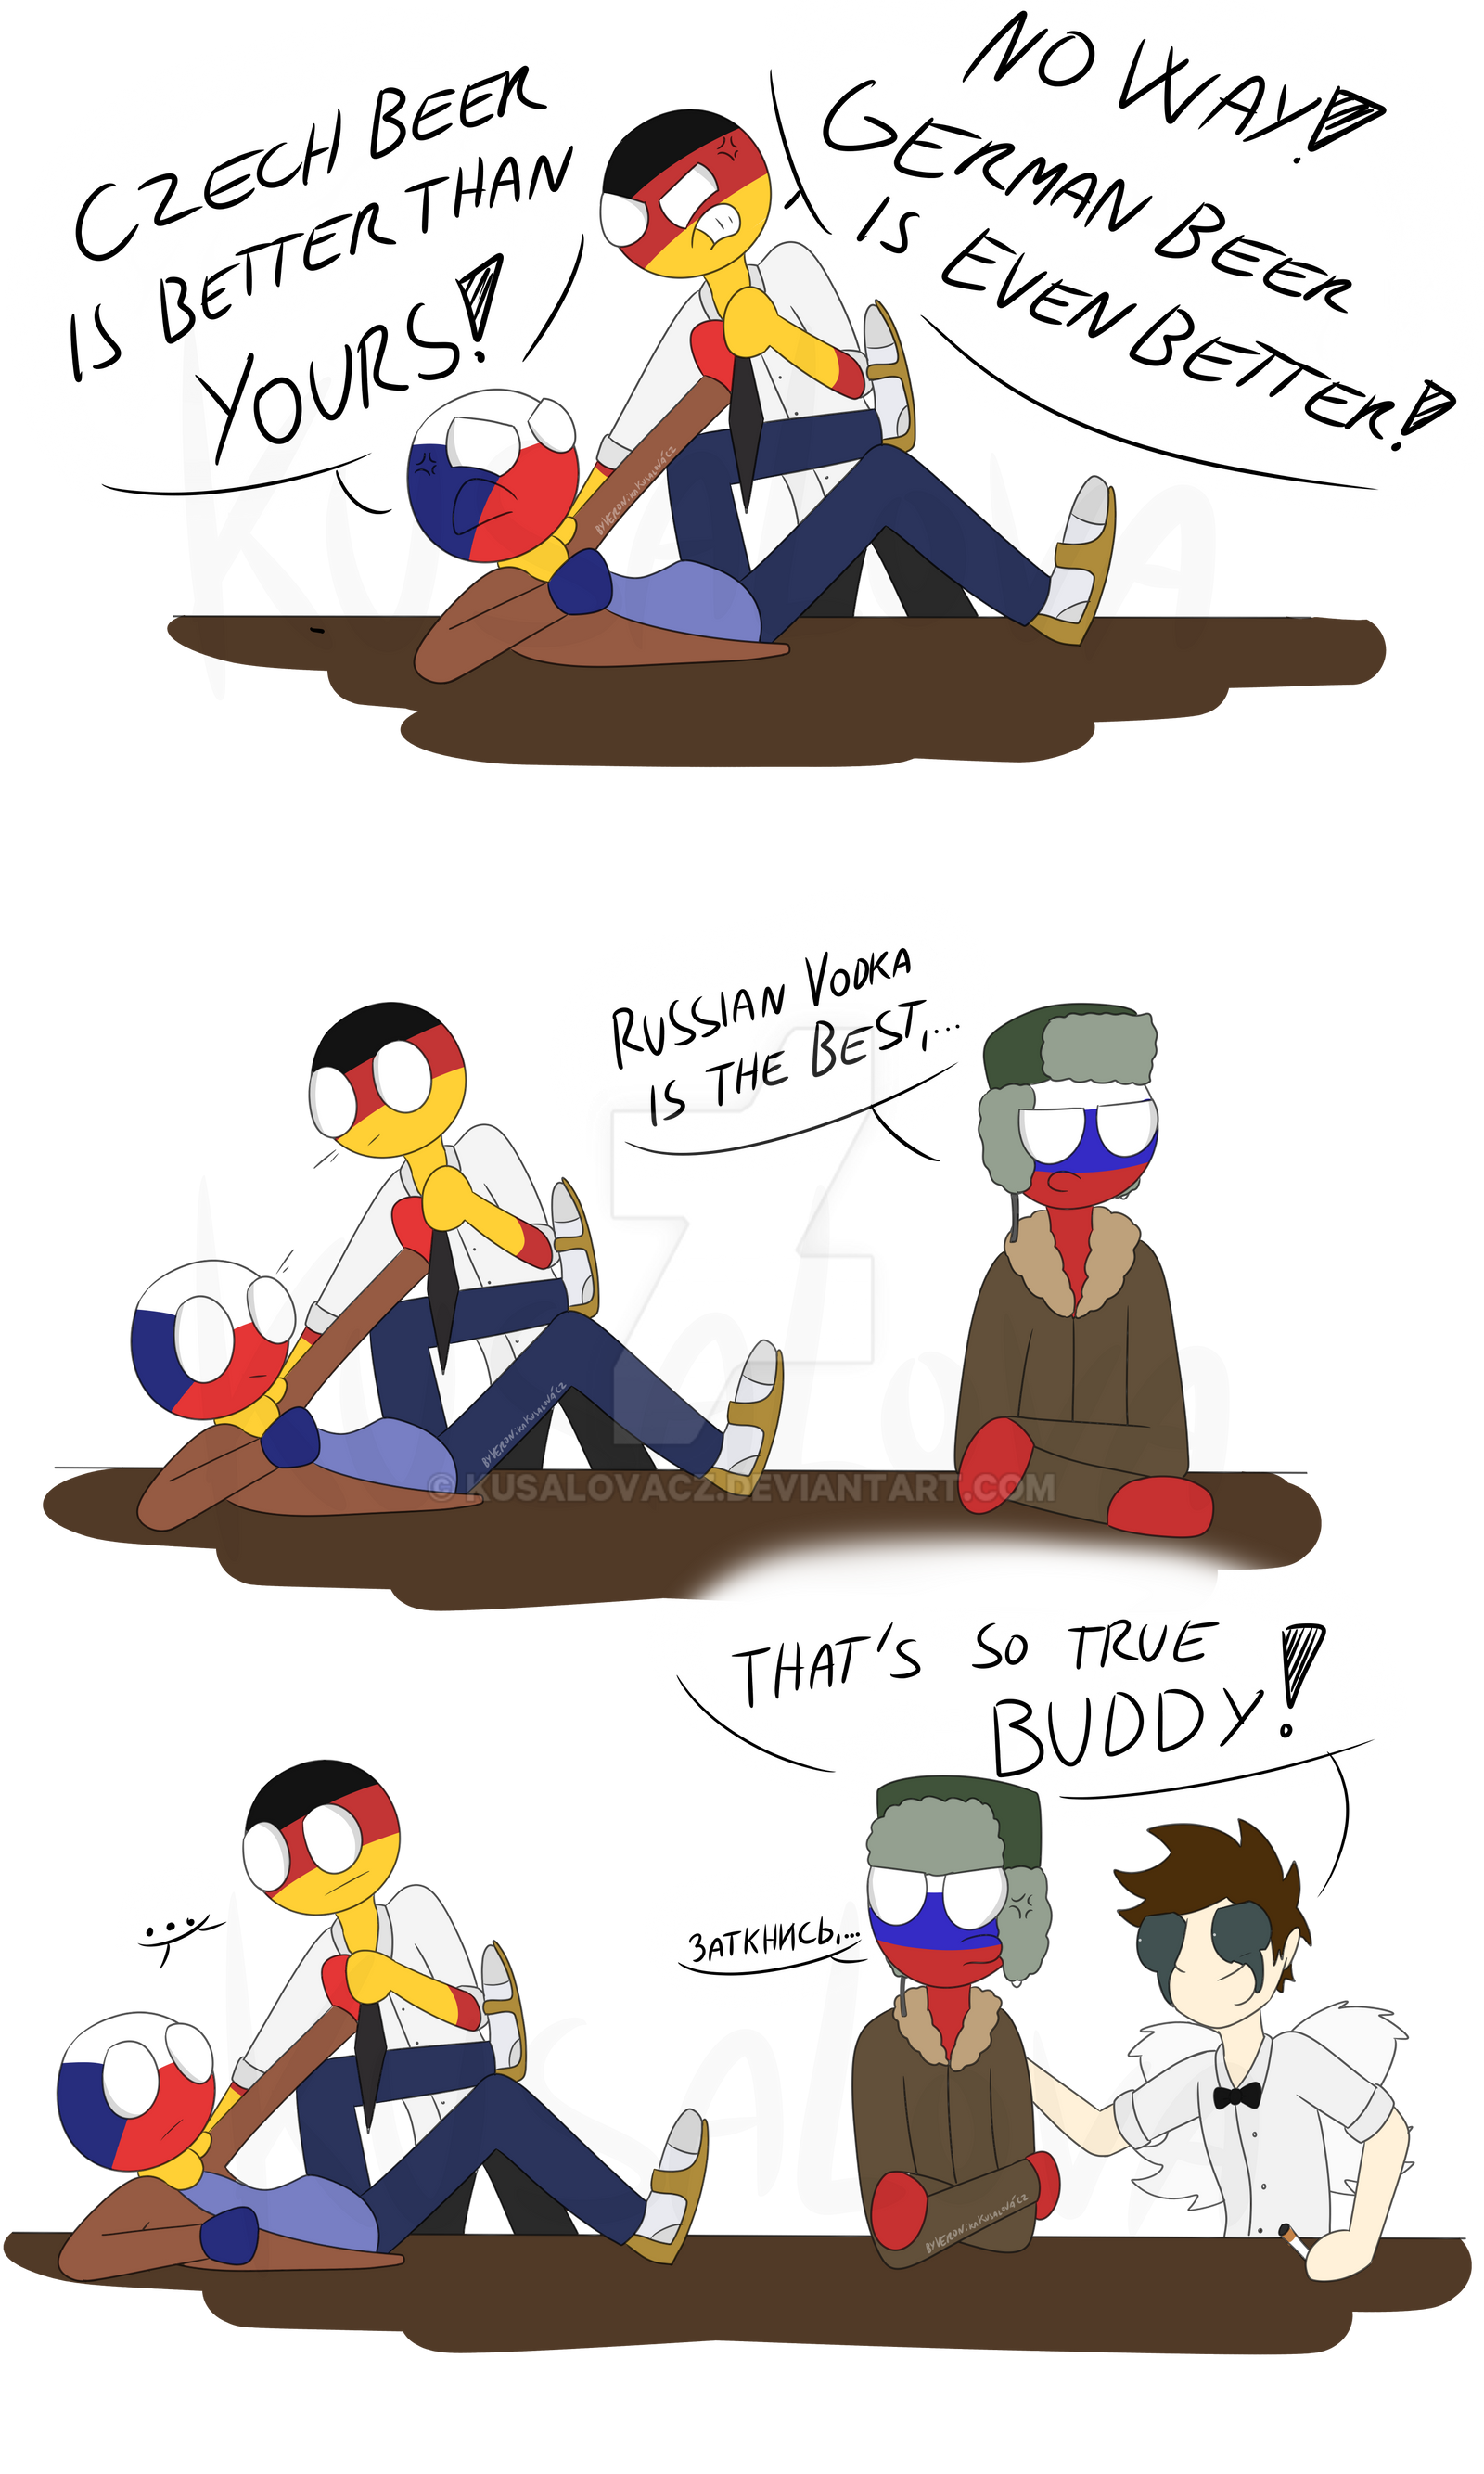 The beer [CountryHumans Comic] by KusaLovaCZ on DeviantArt